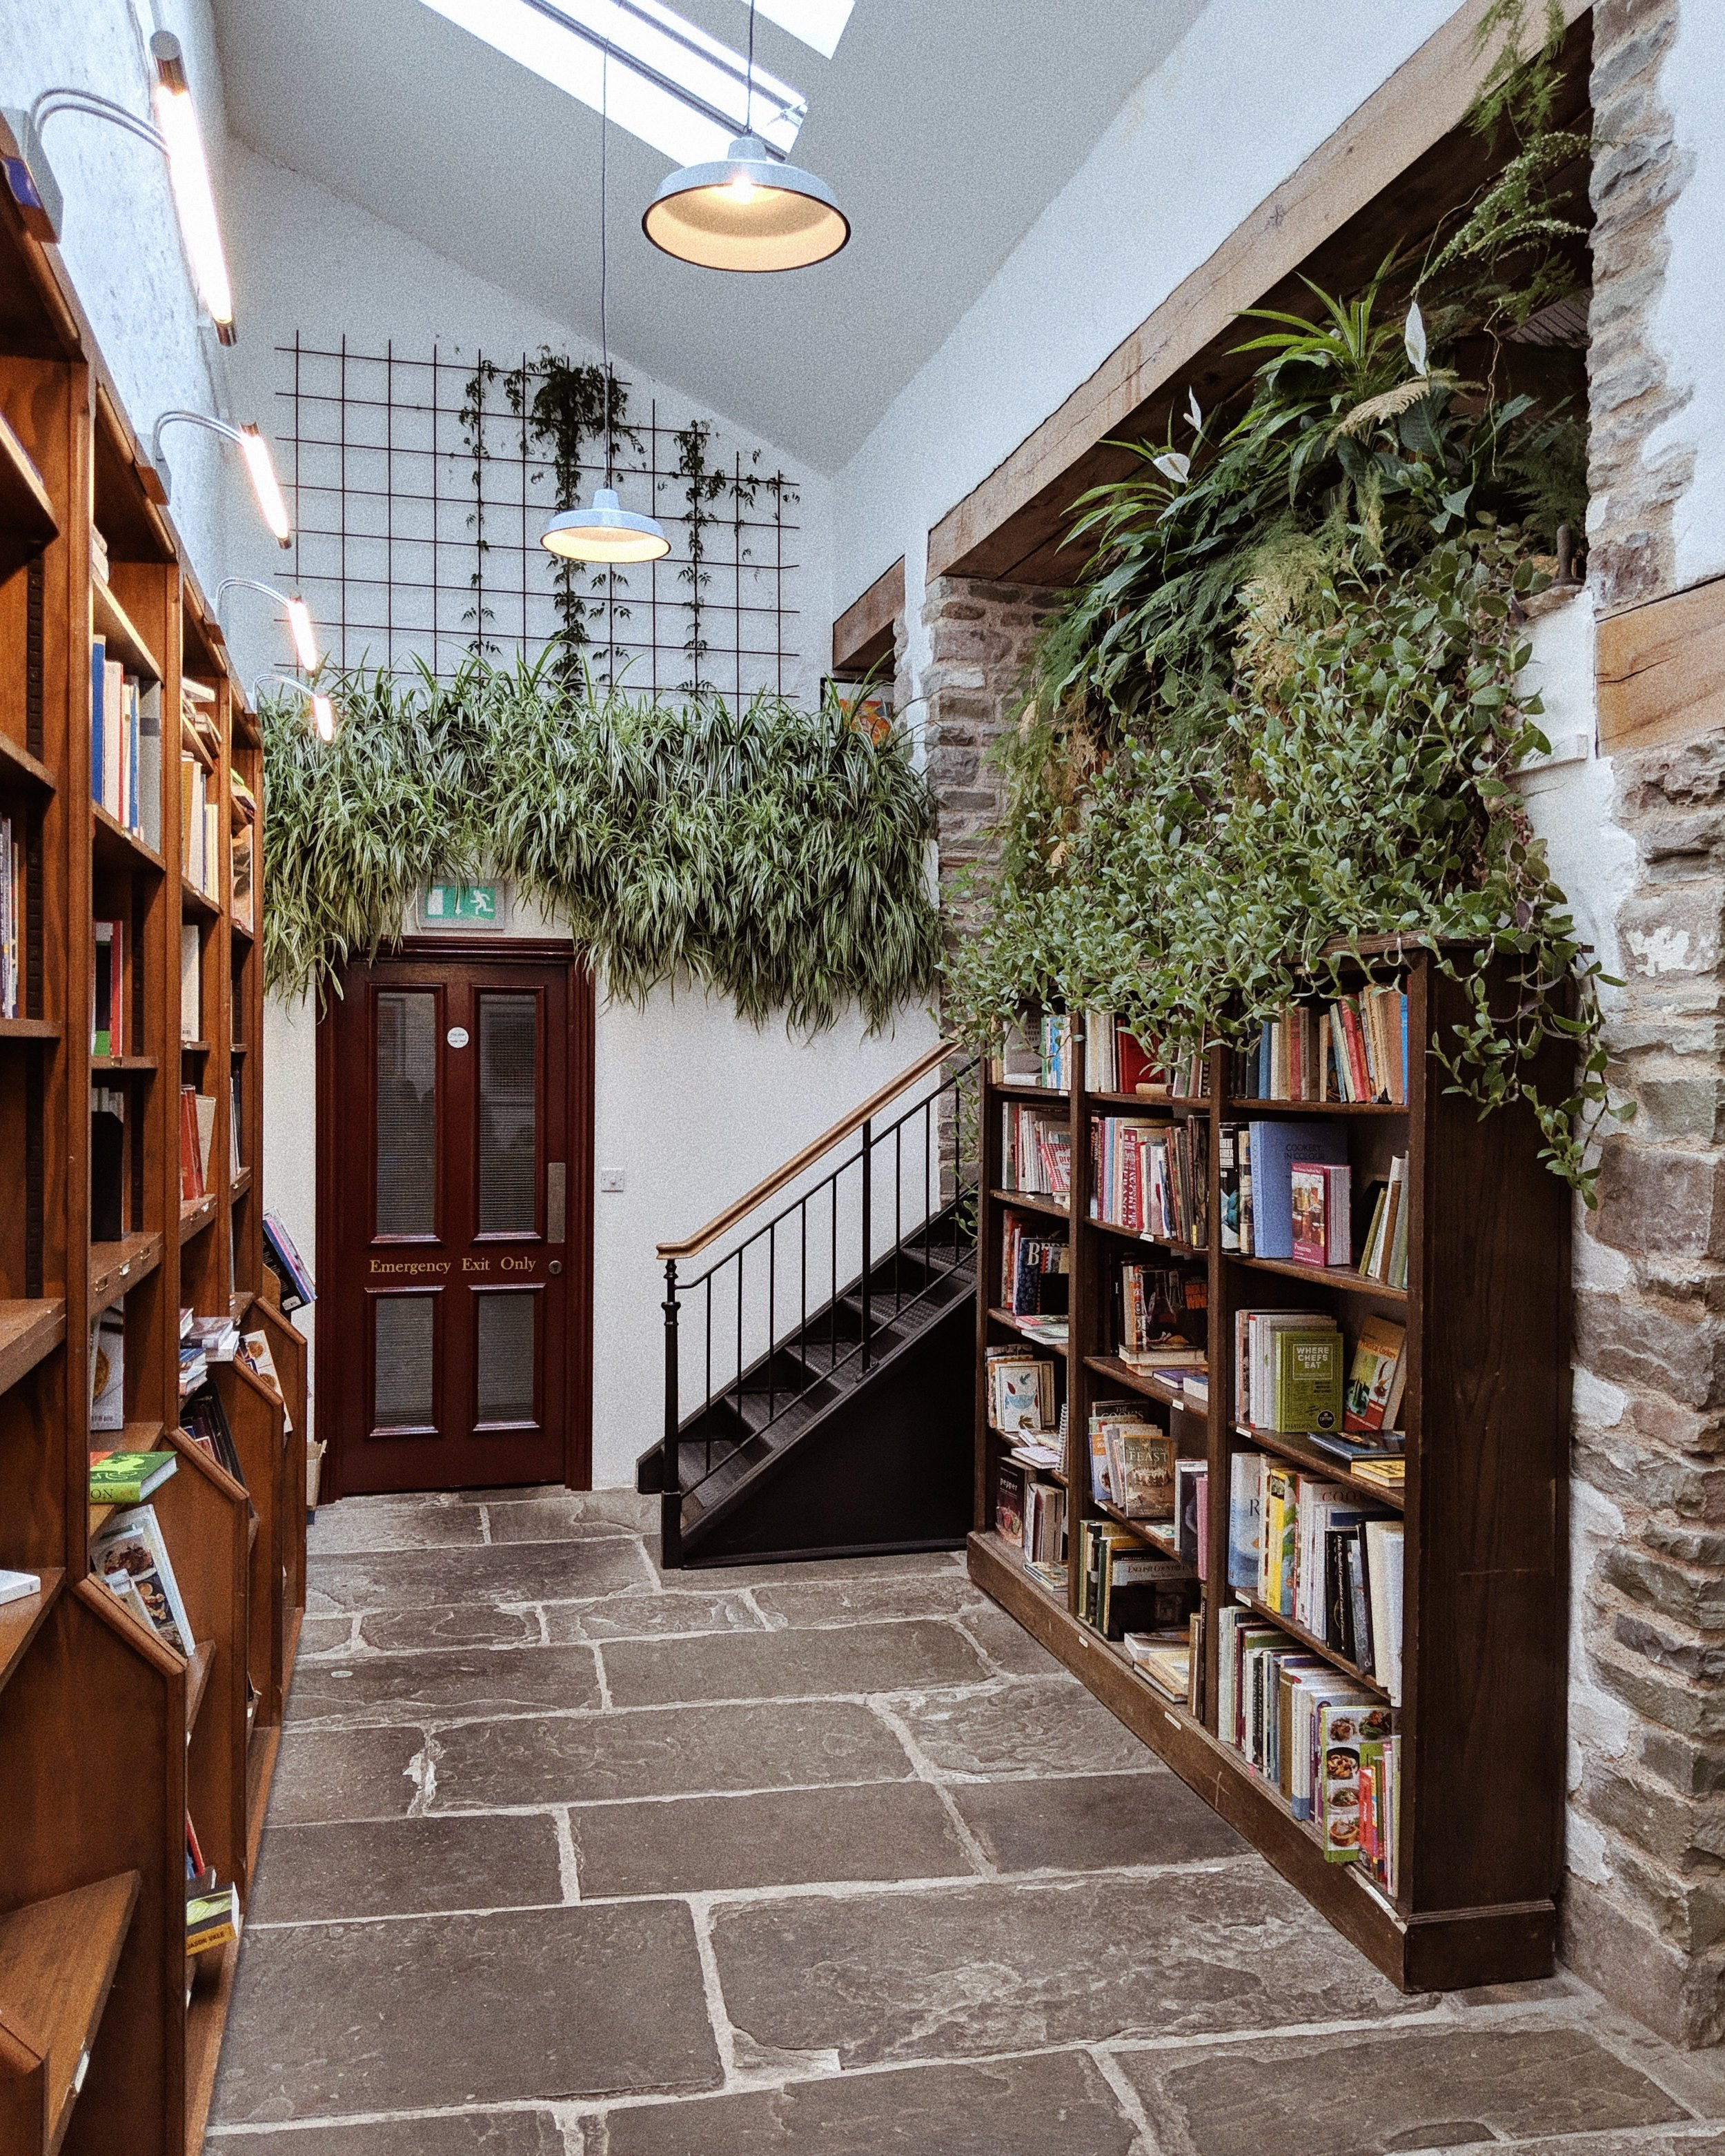 Richard Booth's Bookshop & Cafe in Hay-on-Wye